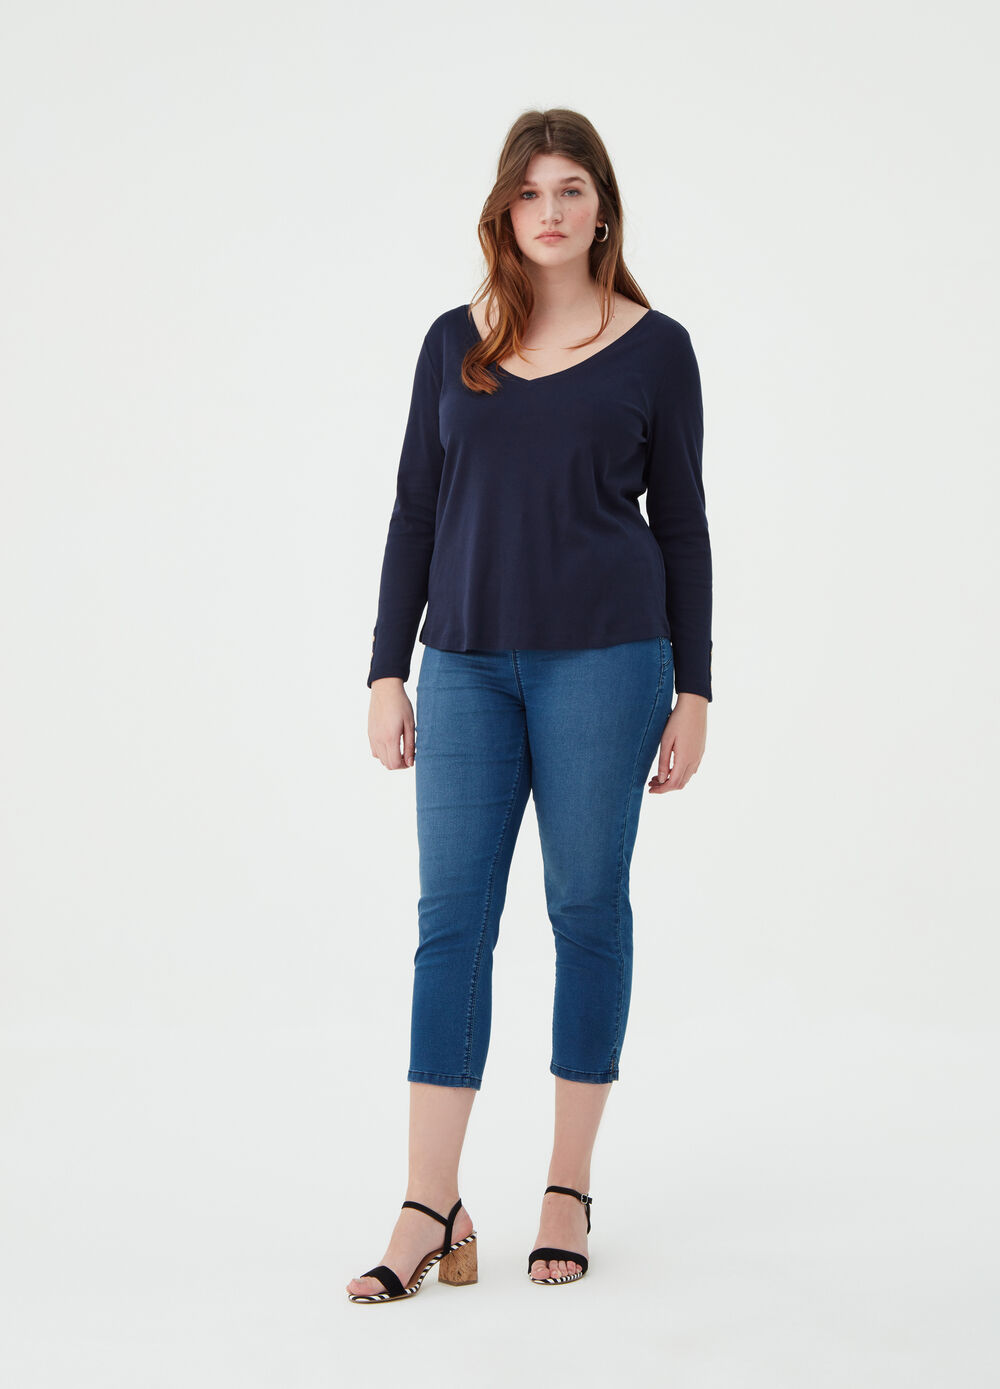 Curvy BCI T-shirt with deep V neck